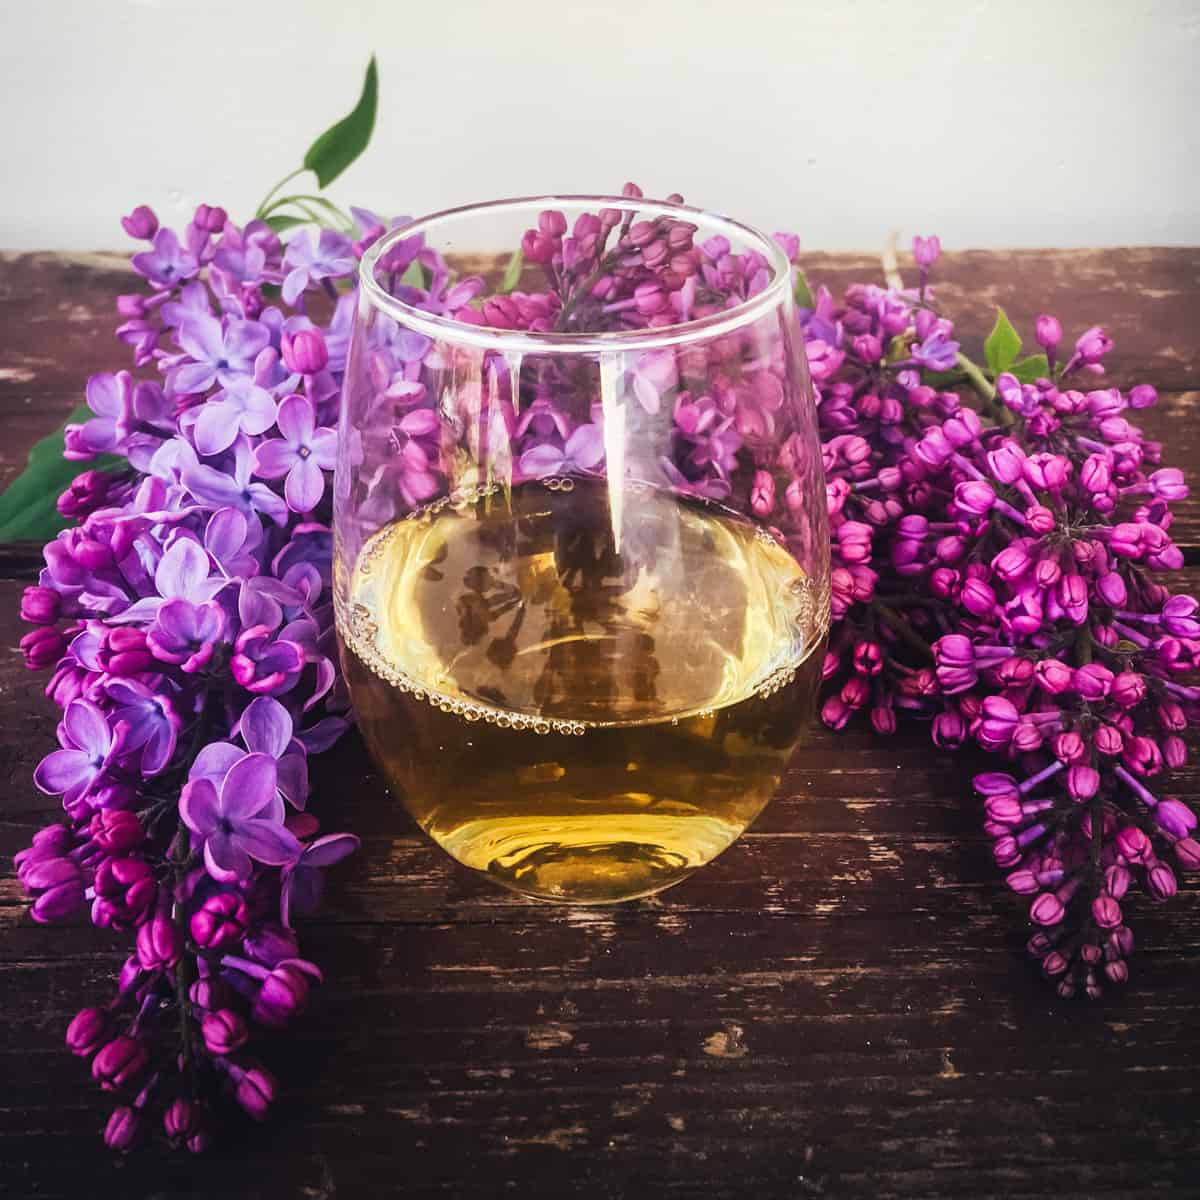 a glass of lilac mead on a table with lilac flowers